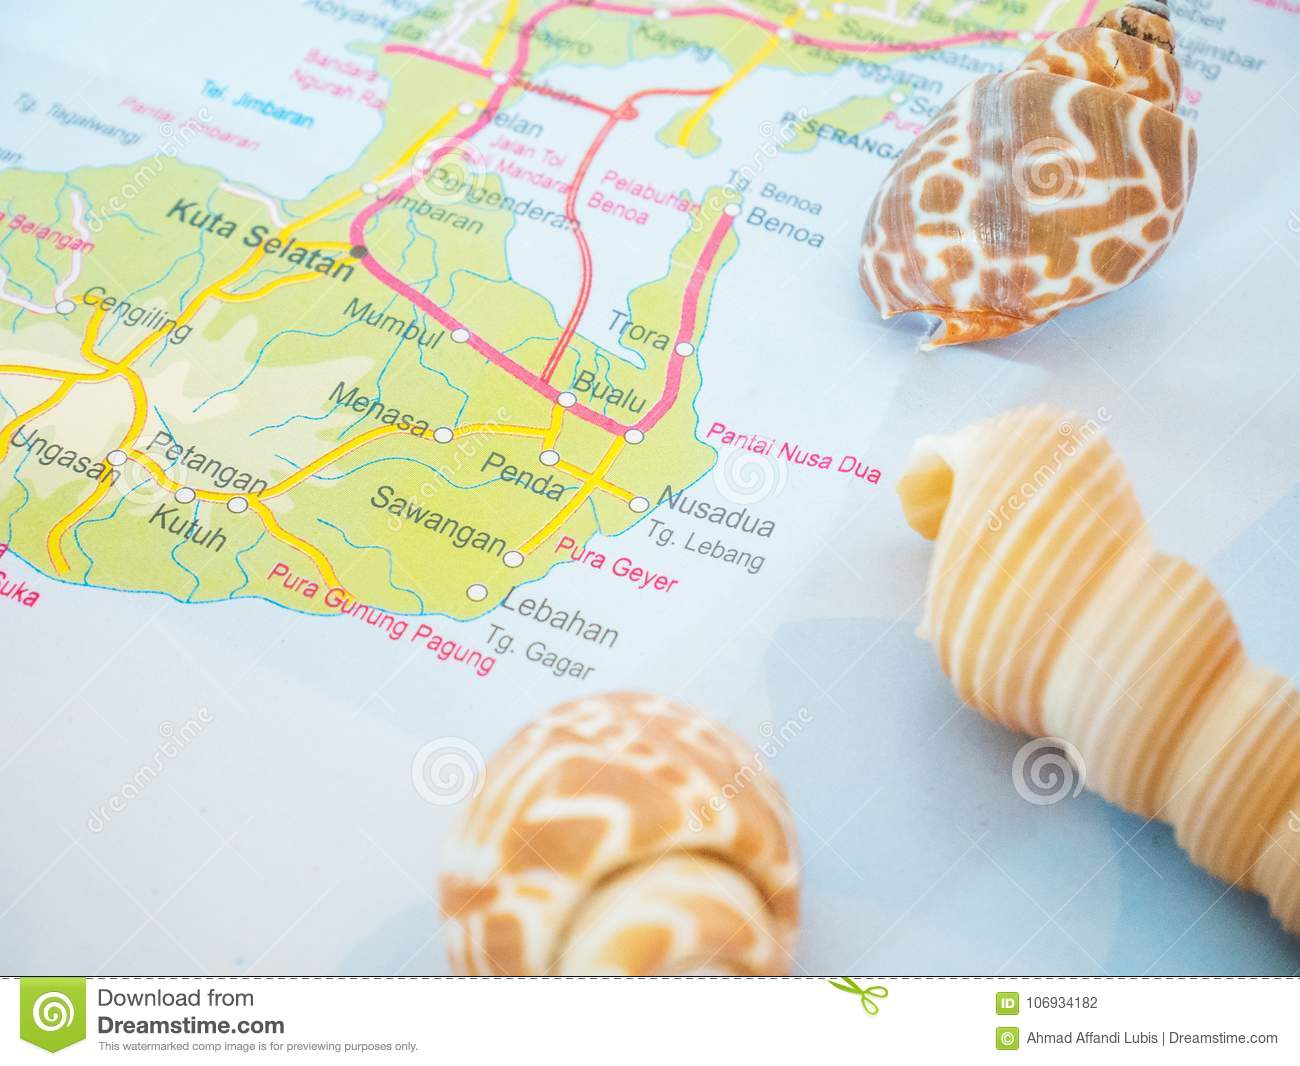 Bali Travel Maps With Seashells And With Popular Destination